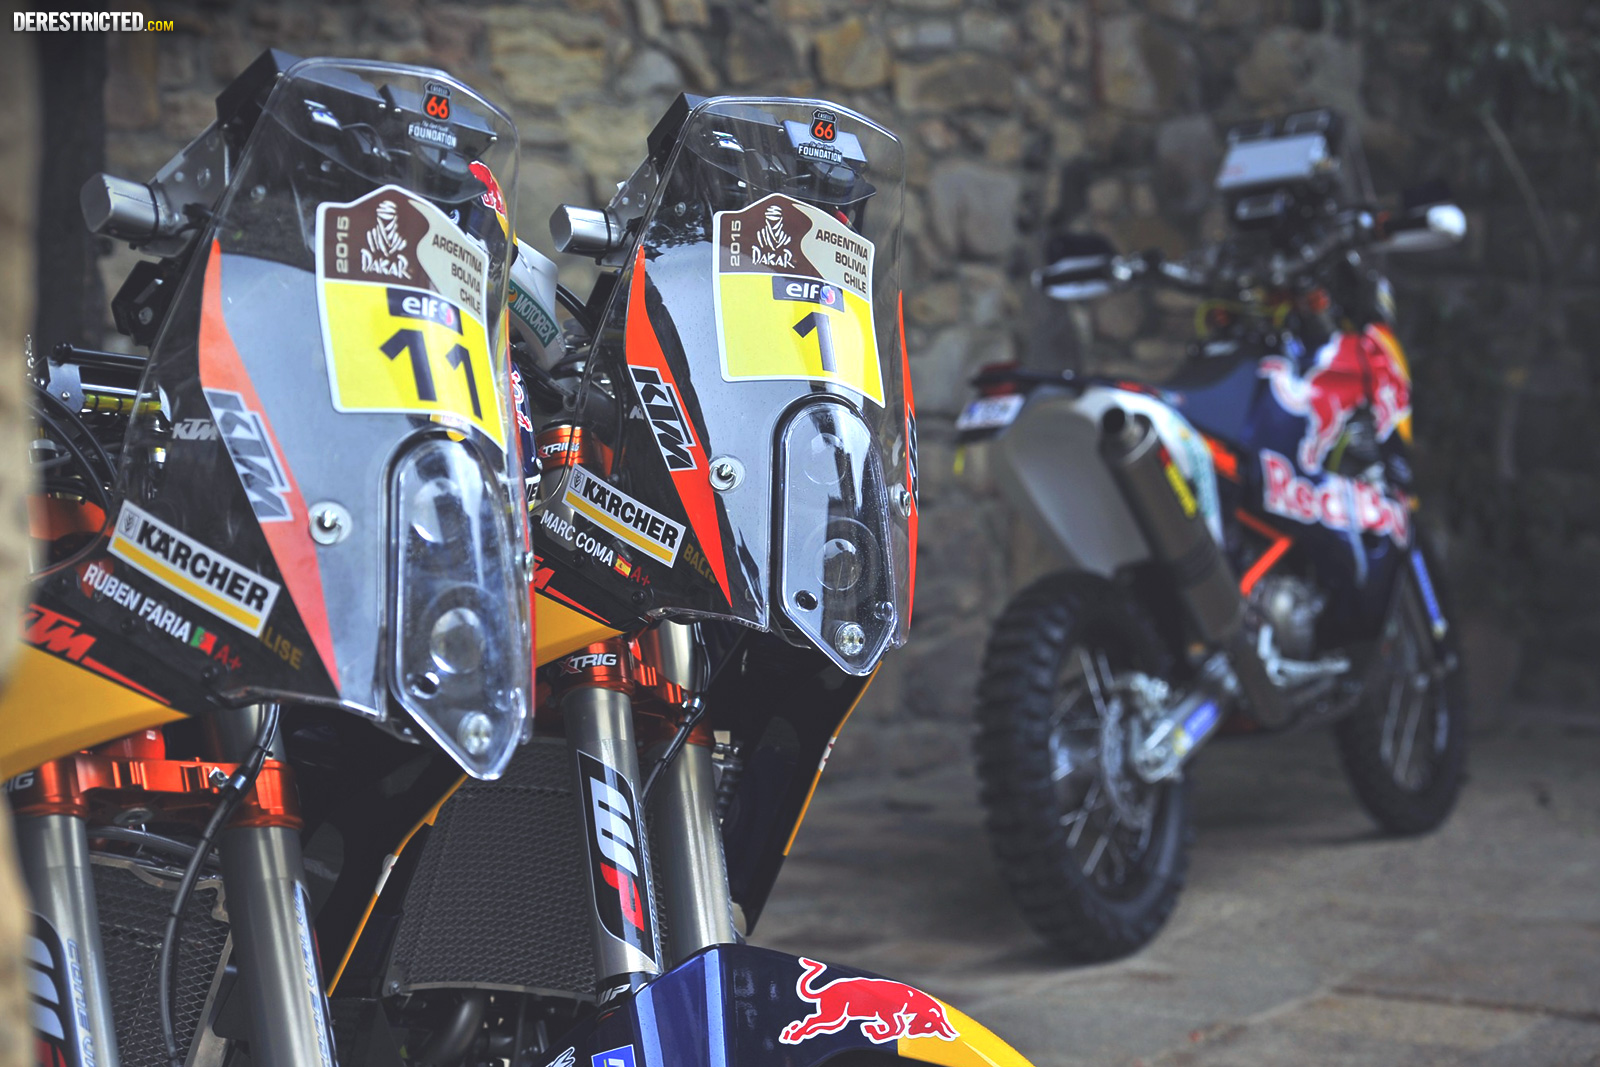 ktm-rally-team-all